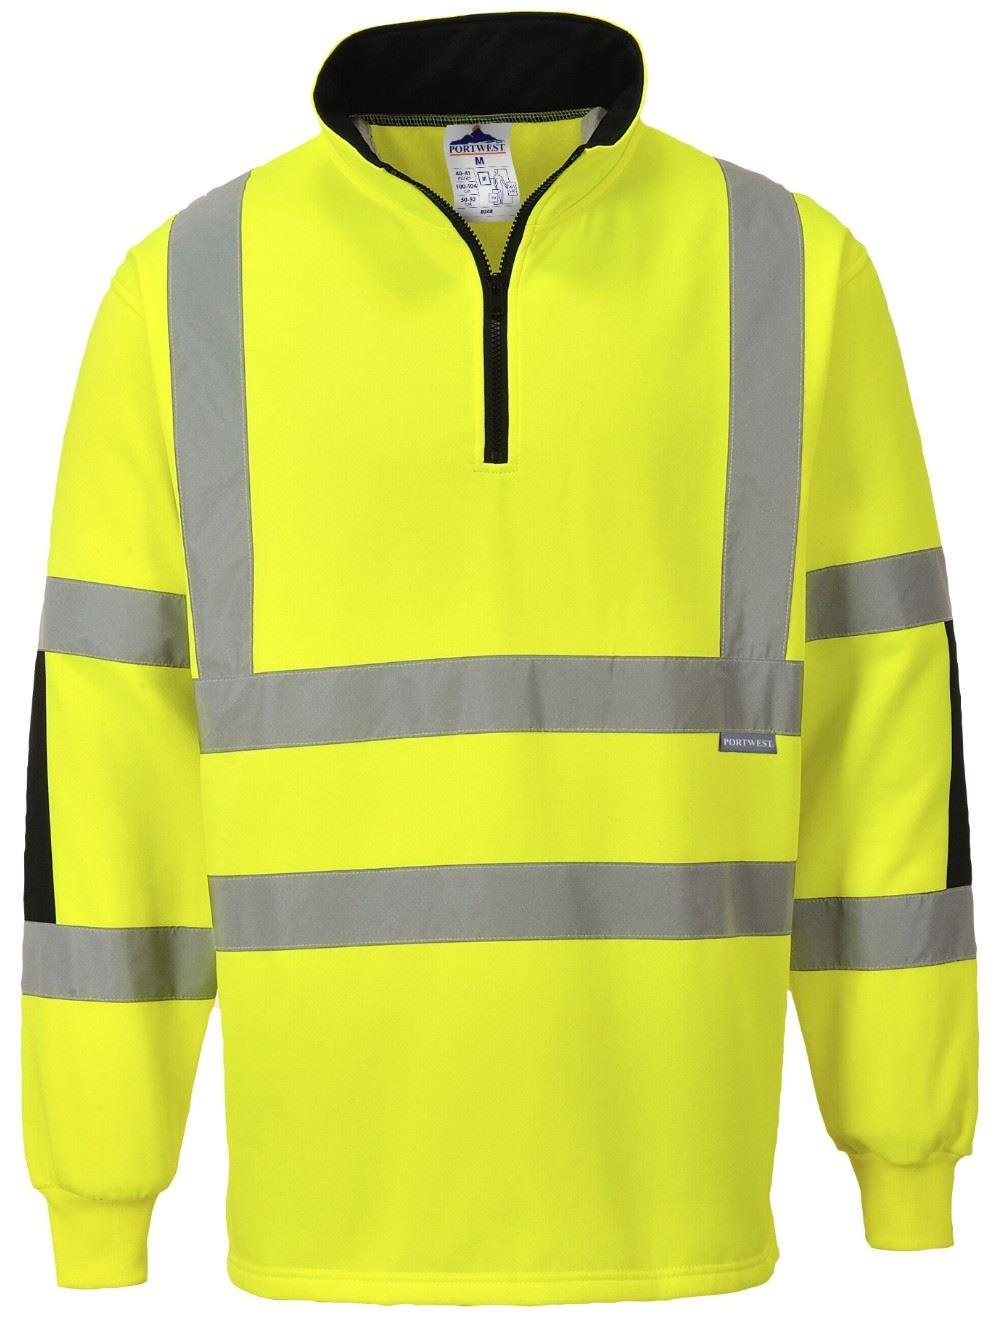 Portwest hi vis rugby shirt yellow